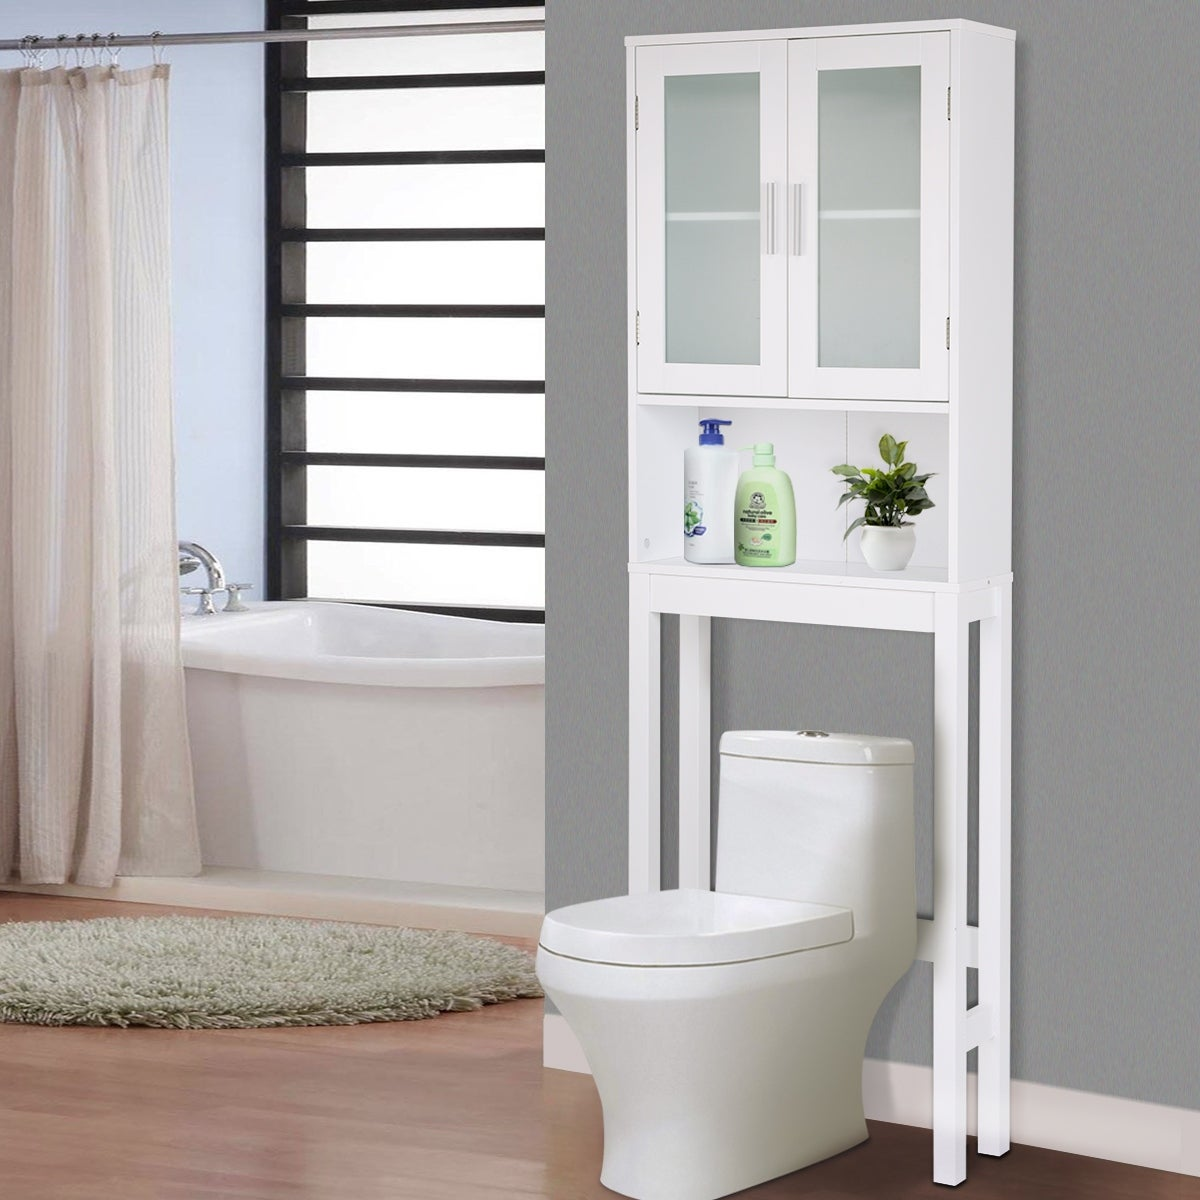 Bathroom Furniture | Find Great Furniture Deals Shopping at ...